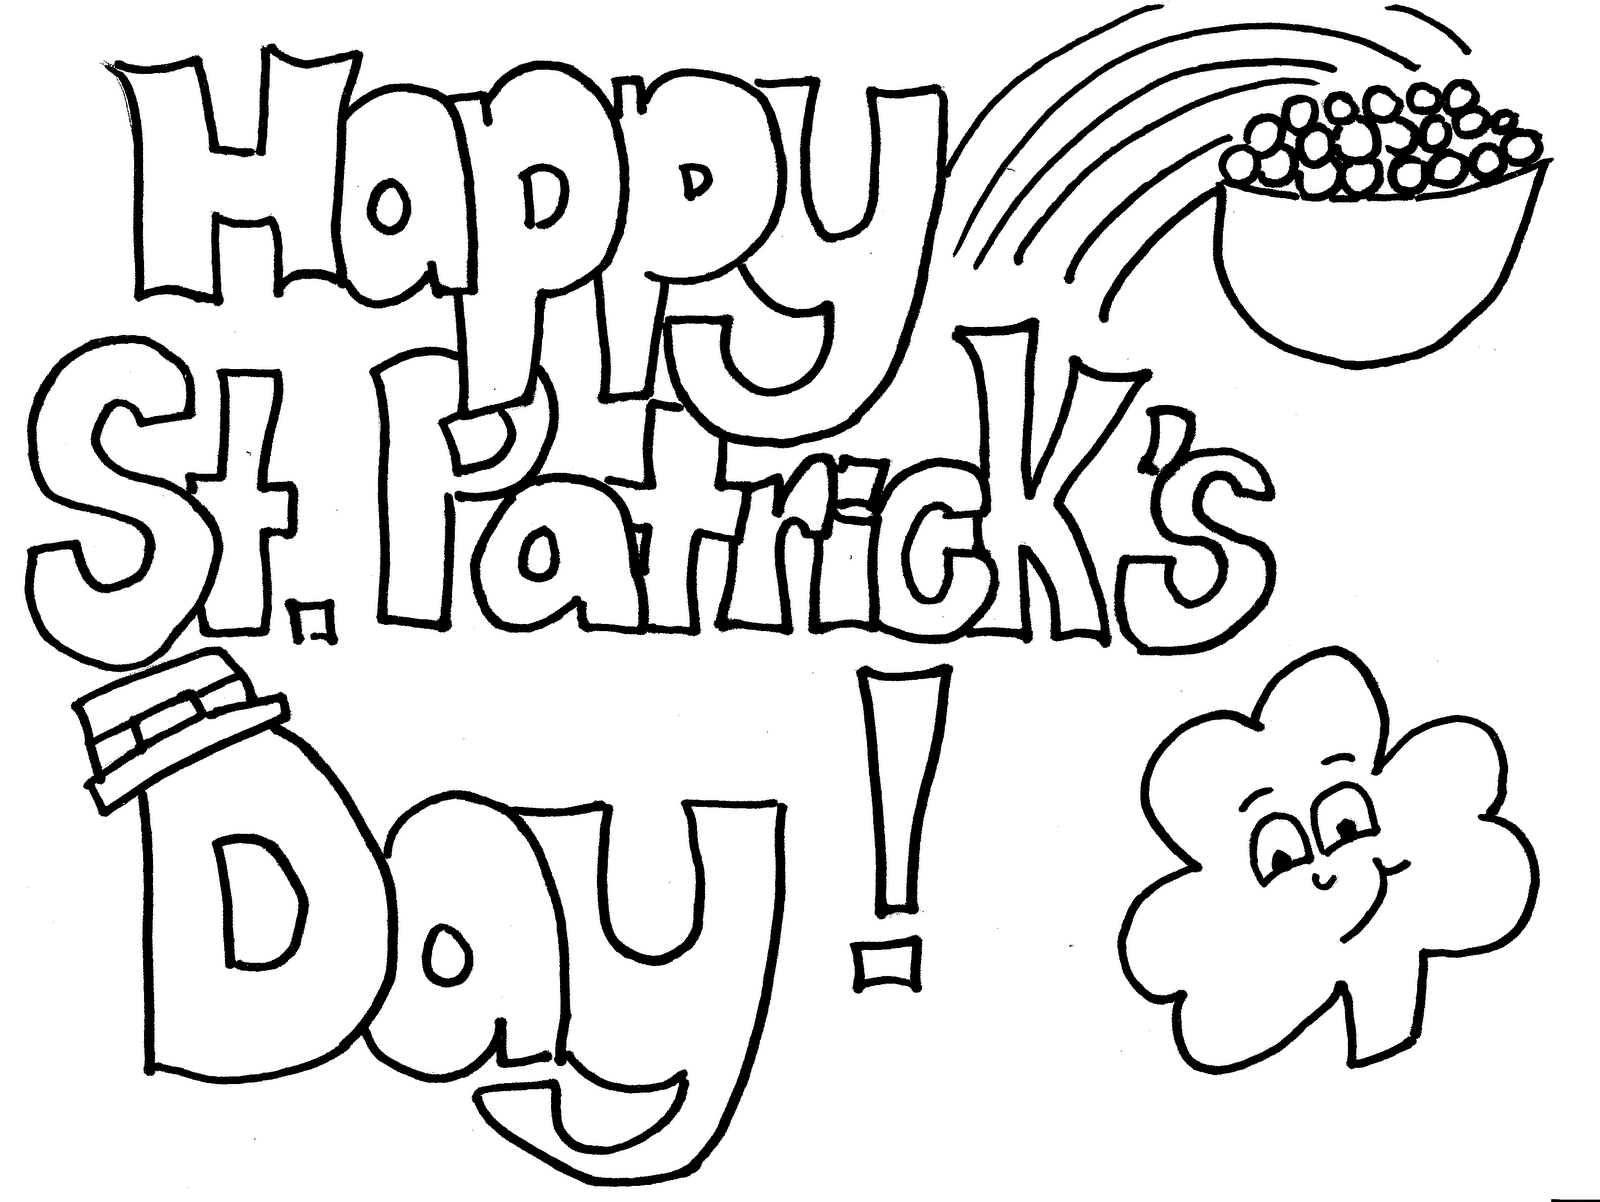 St Patrick S Day Colouring Page St Patricks Day Pictures St Patricks Coloring Sheets St Patrick